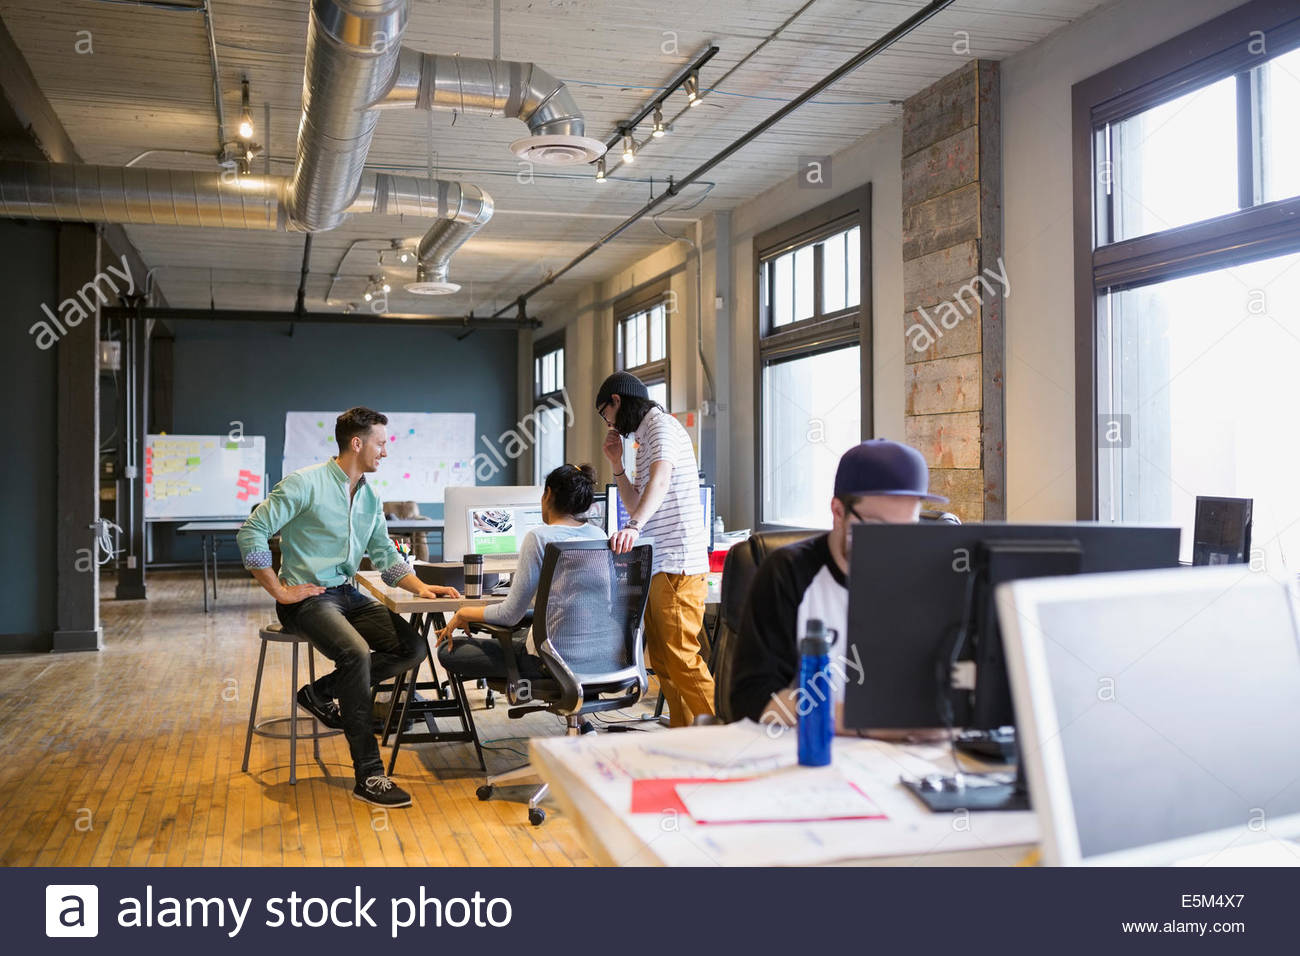 Creative business people working in office Photo Stock